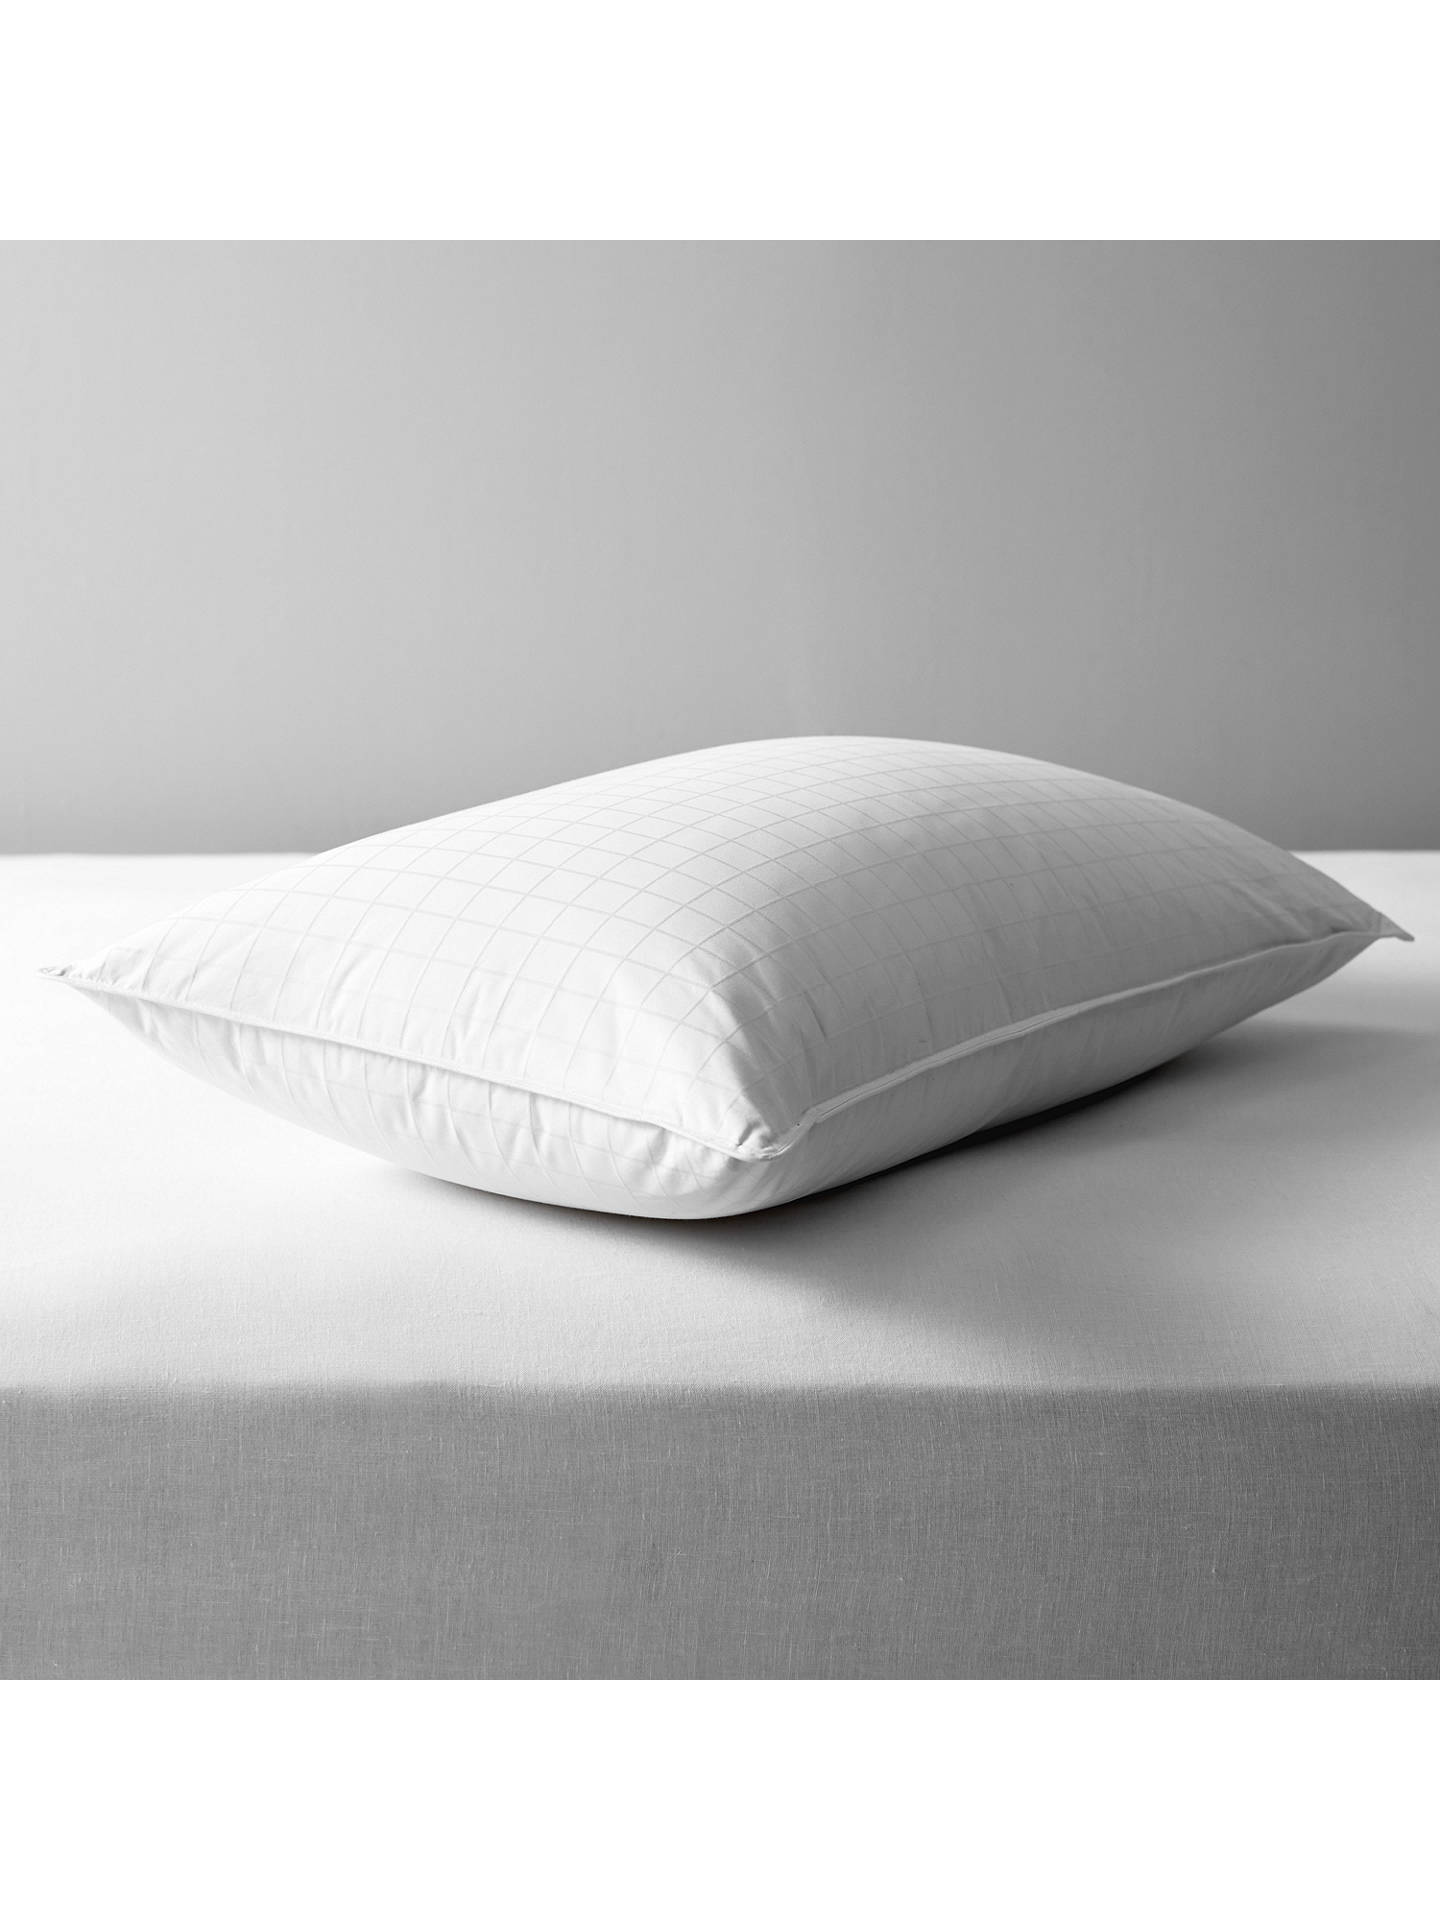 BuyJohn Lewis & Partners Natural White Goose Down Standard Pillow, Soft/Medium Online at johnlewis.com